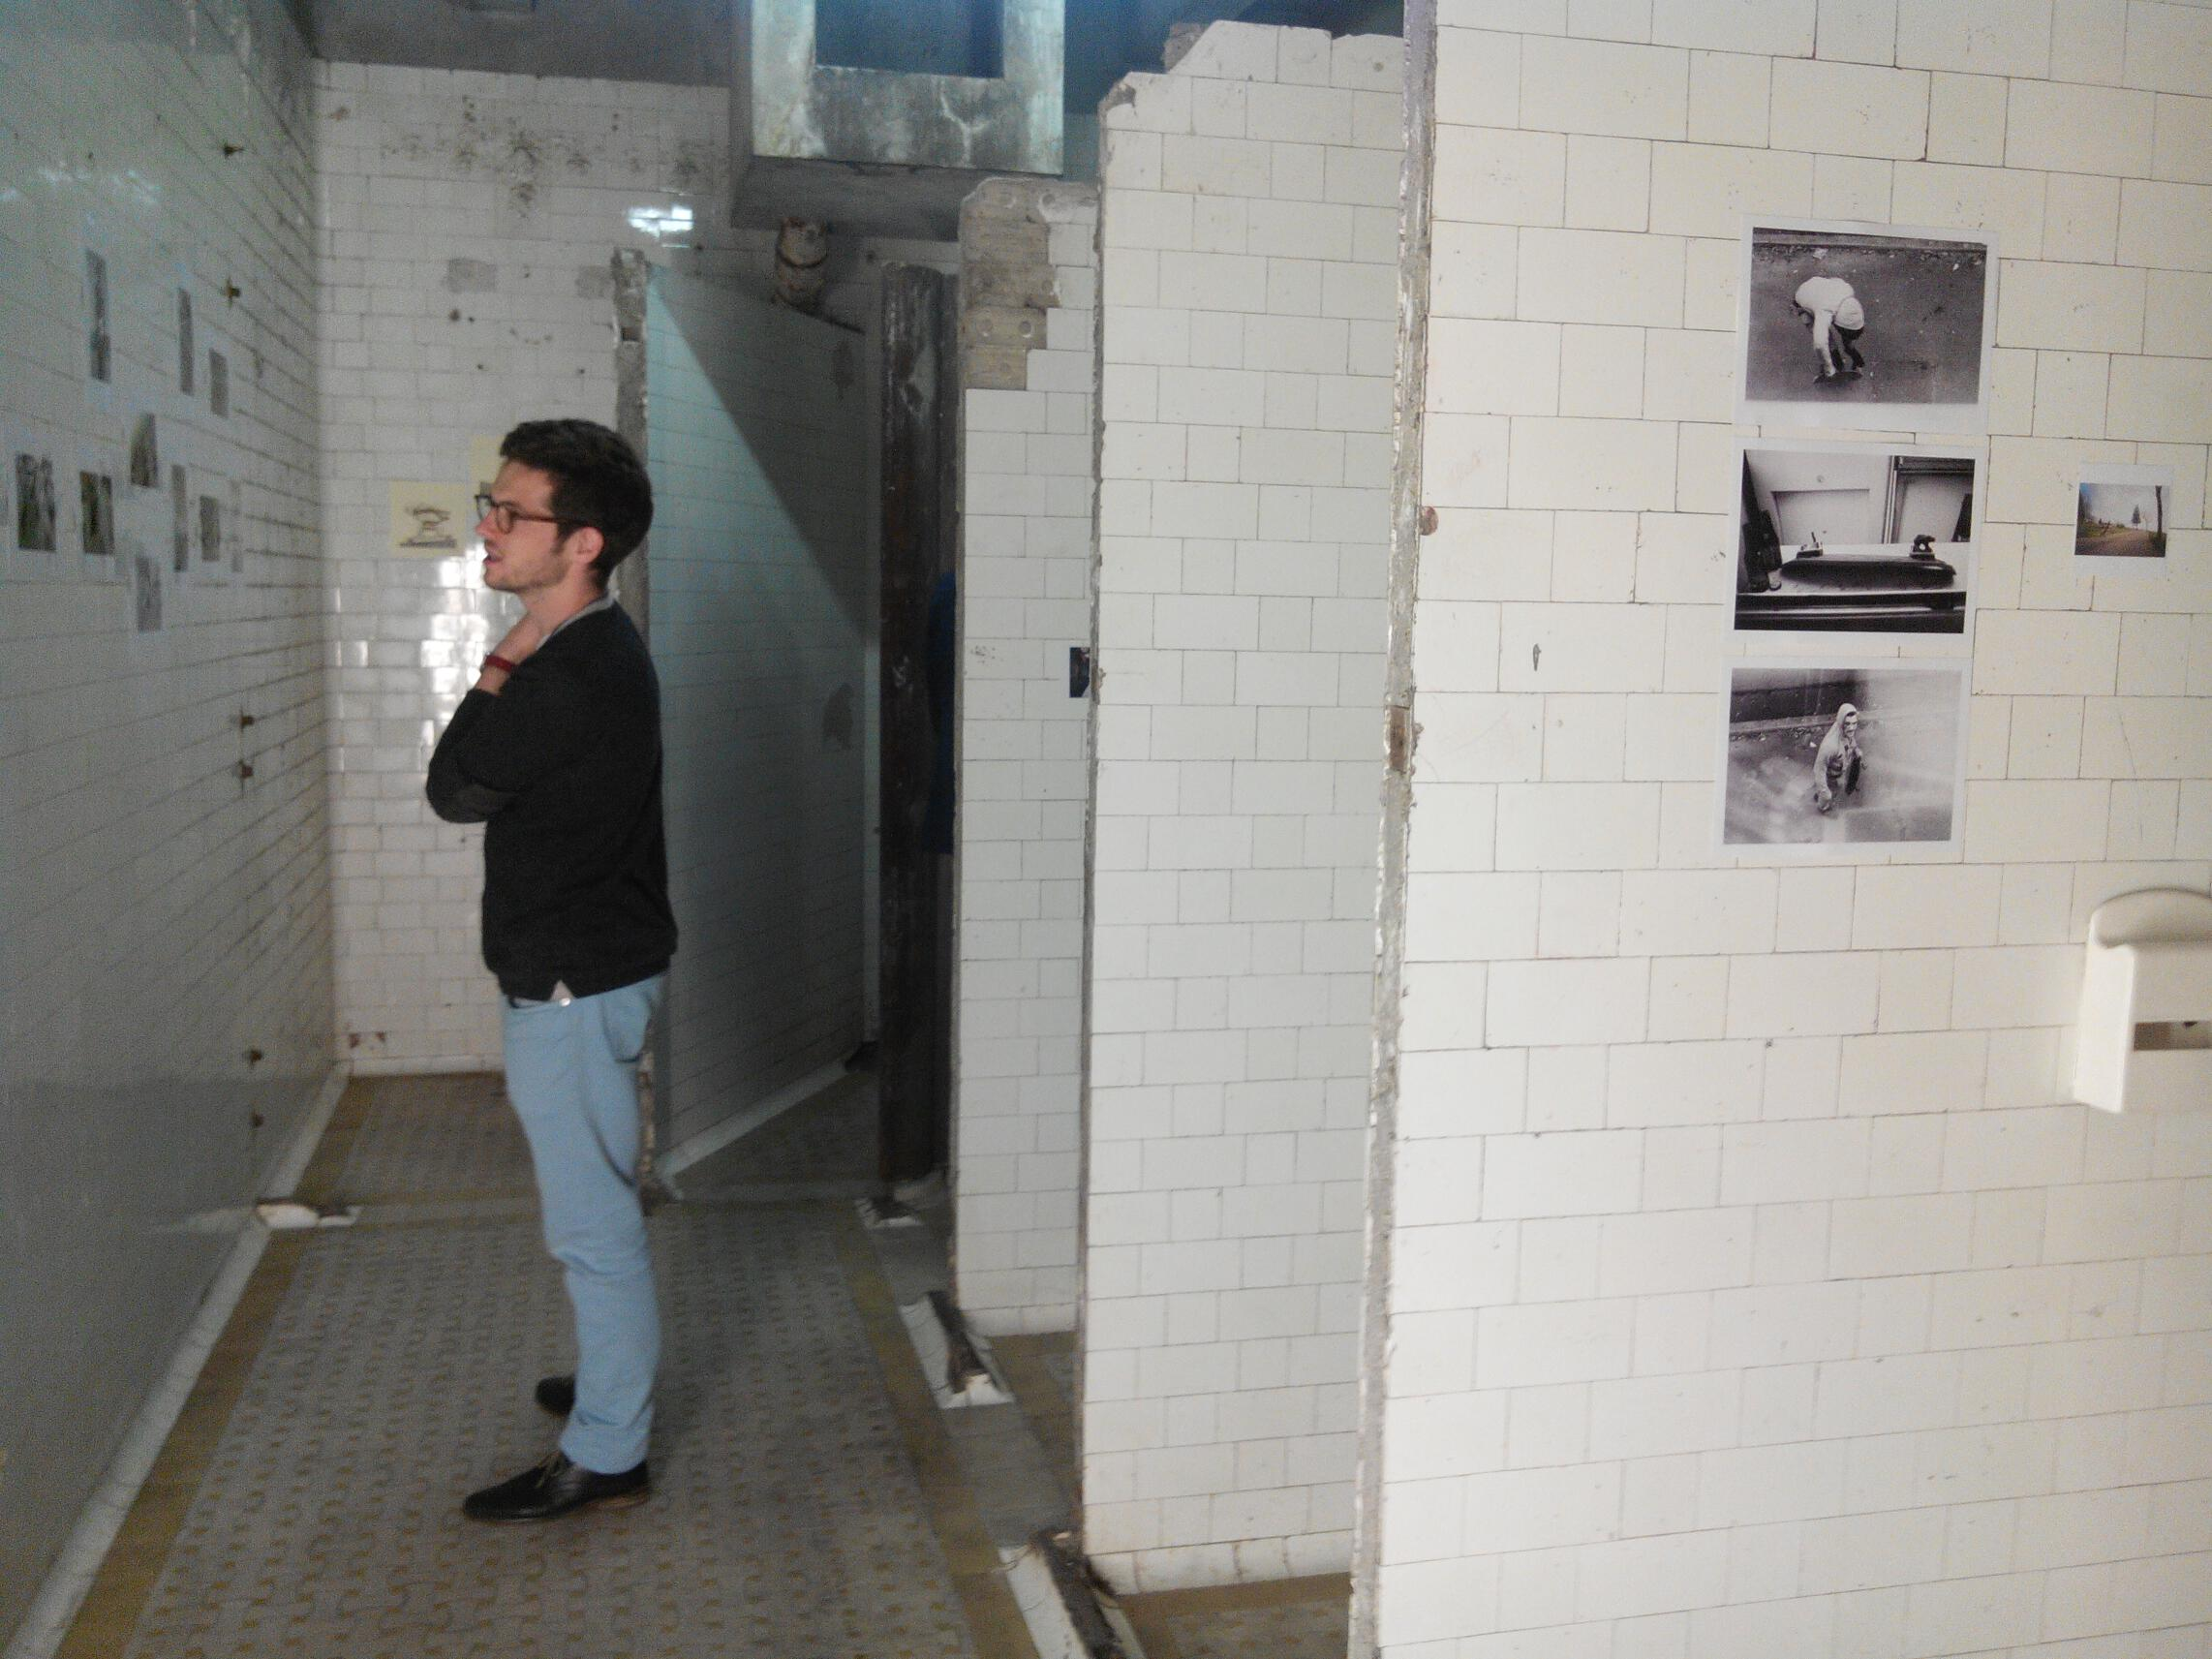 20140830 museum night Photo 10 _ looking at the photos on the wall of an old public toilets in Paris.